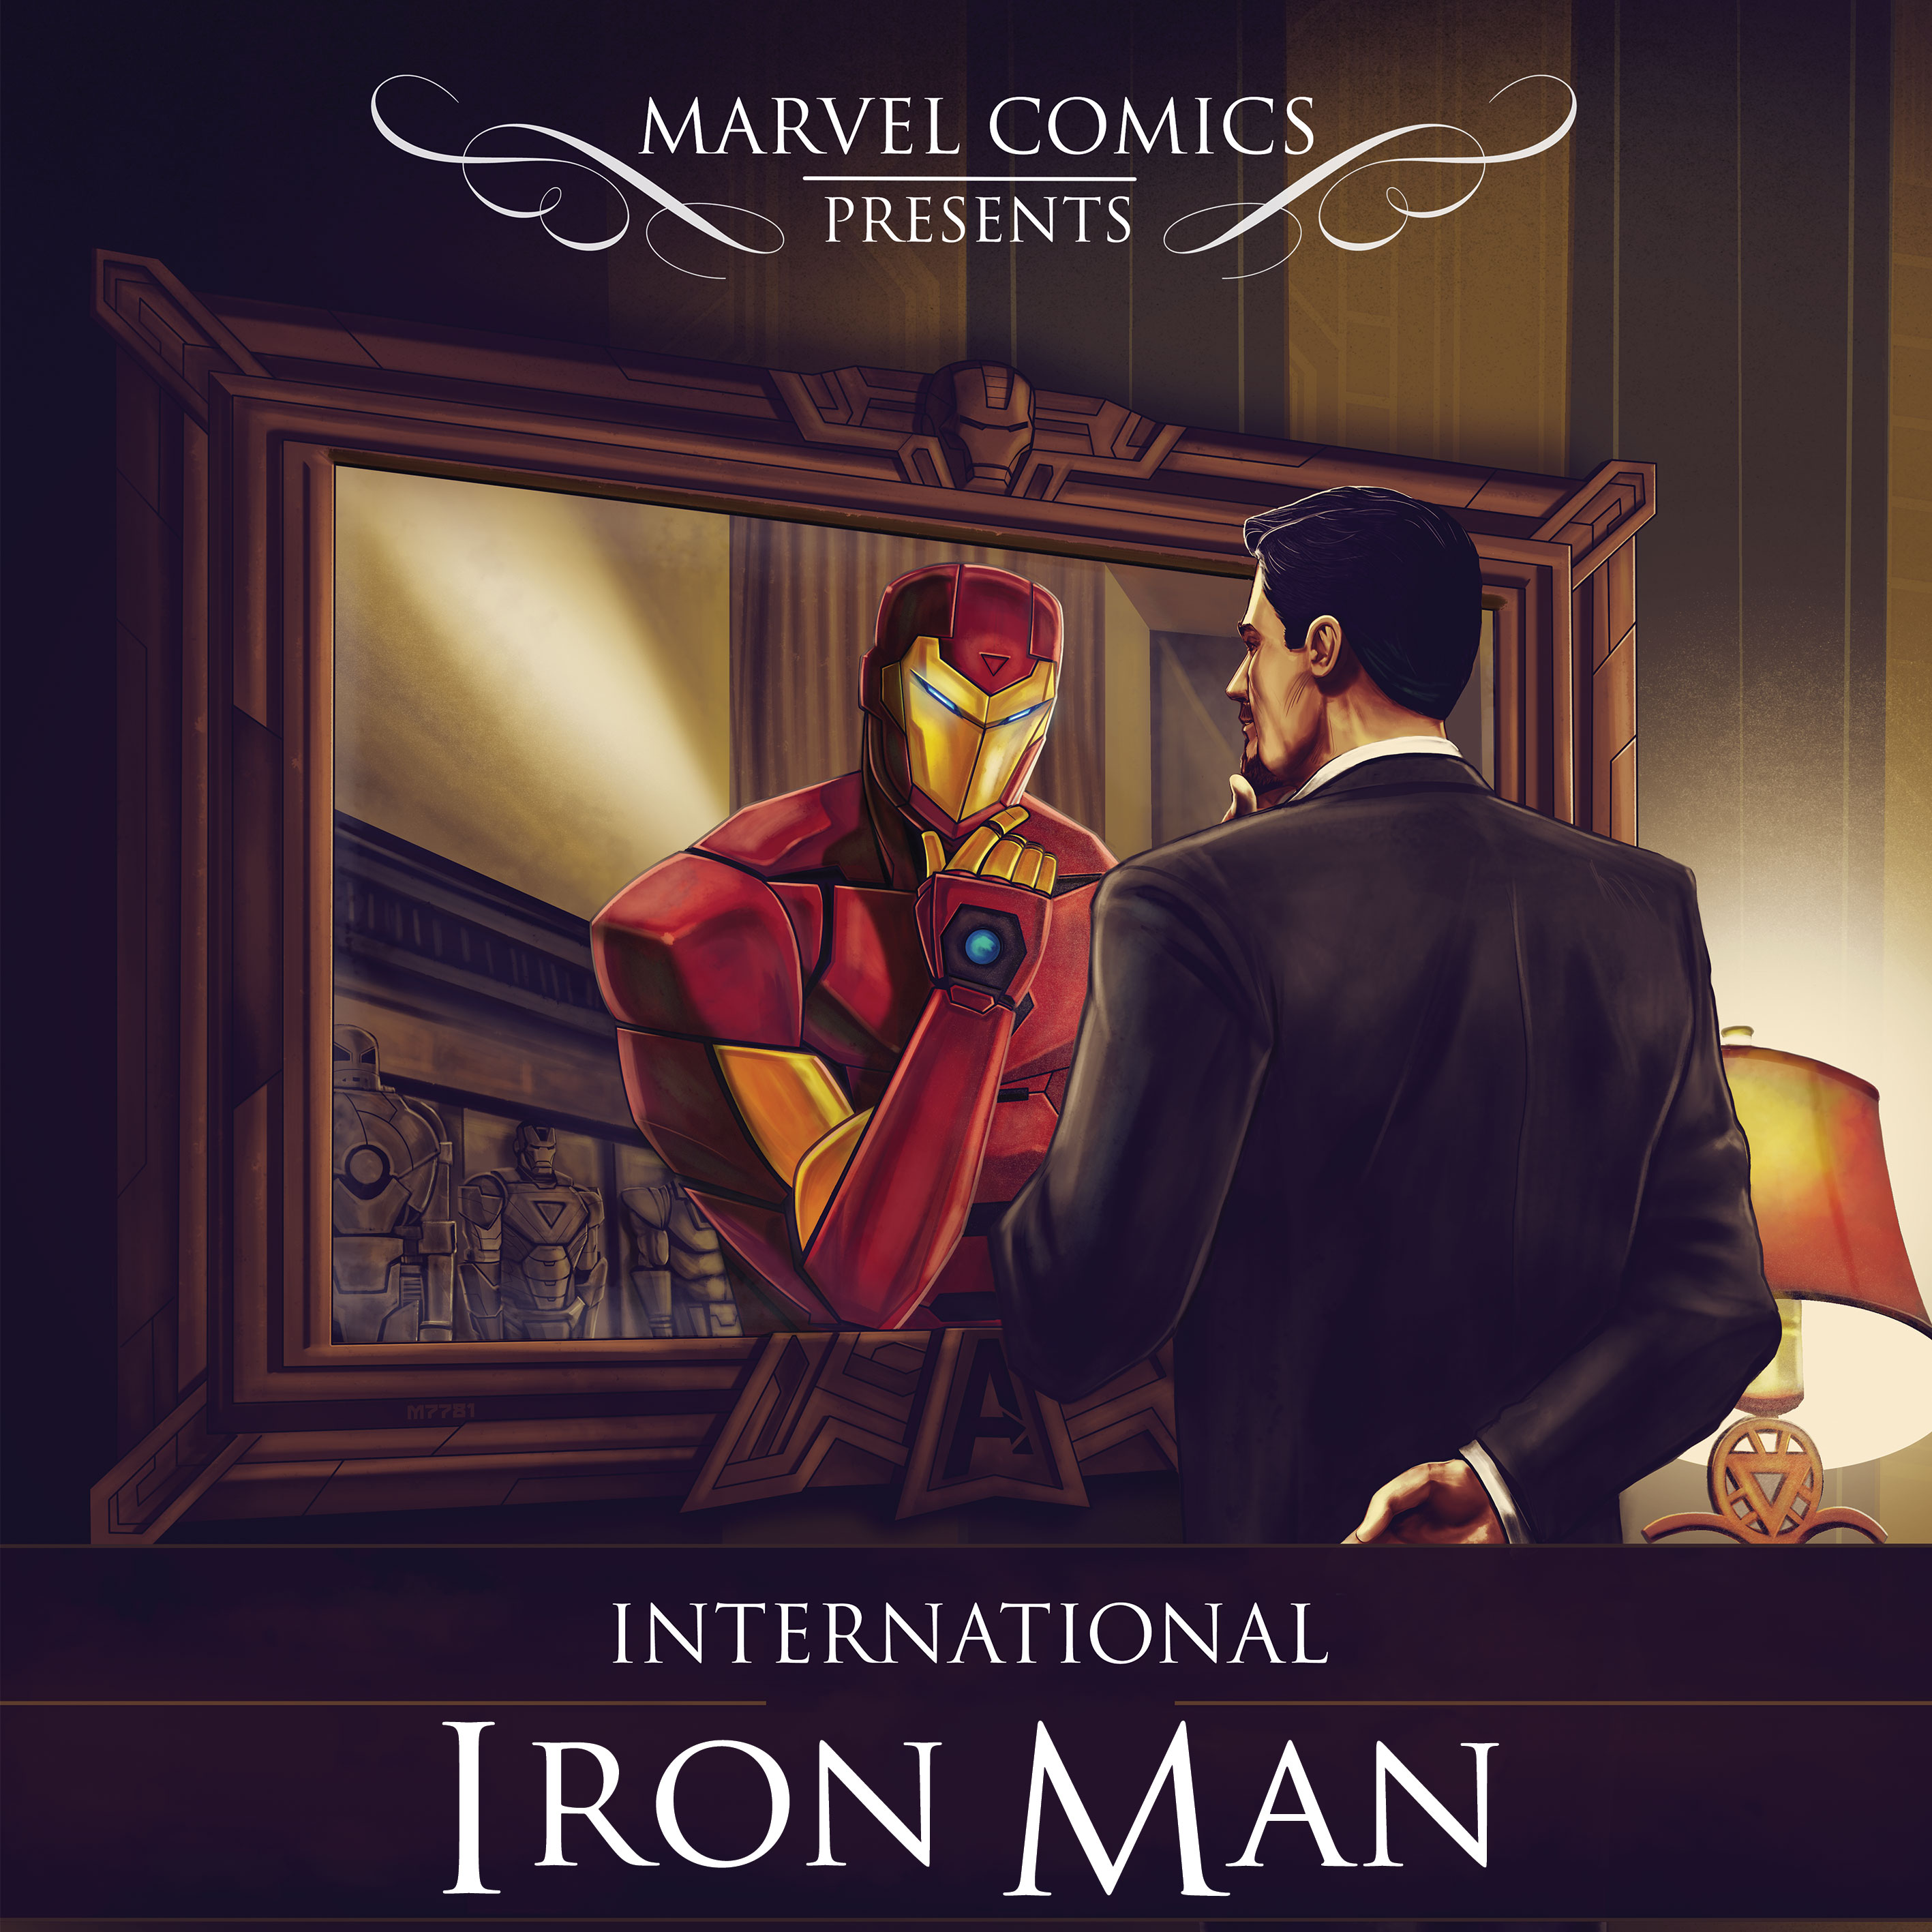 Comic Book Cover Art Sale : First look at international iron man